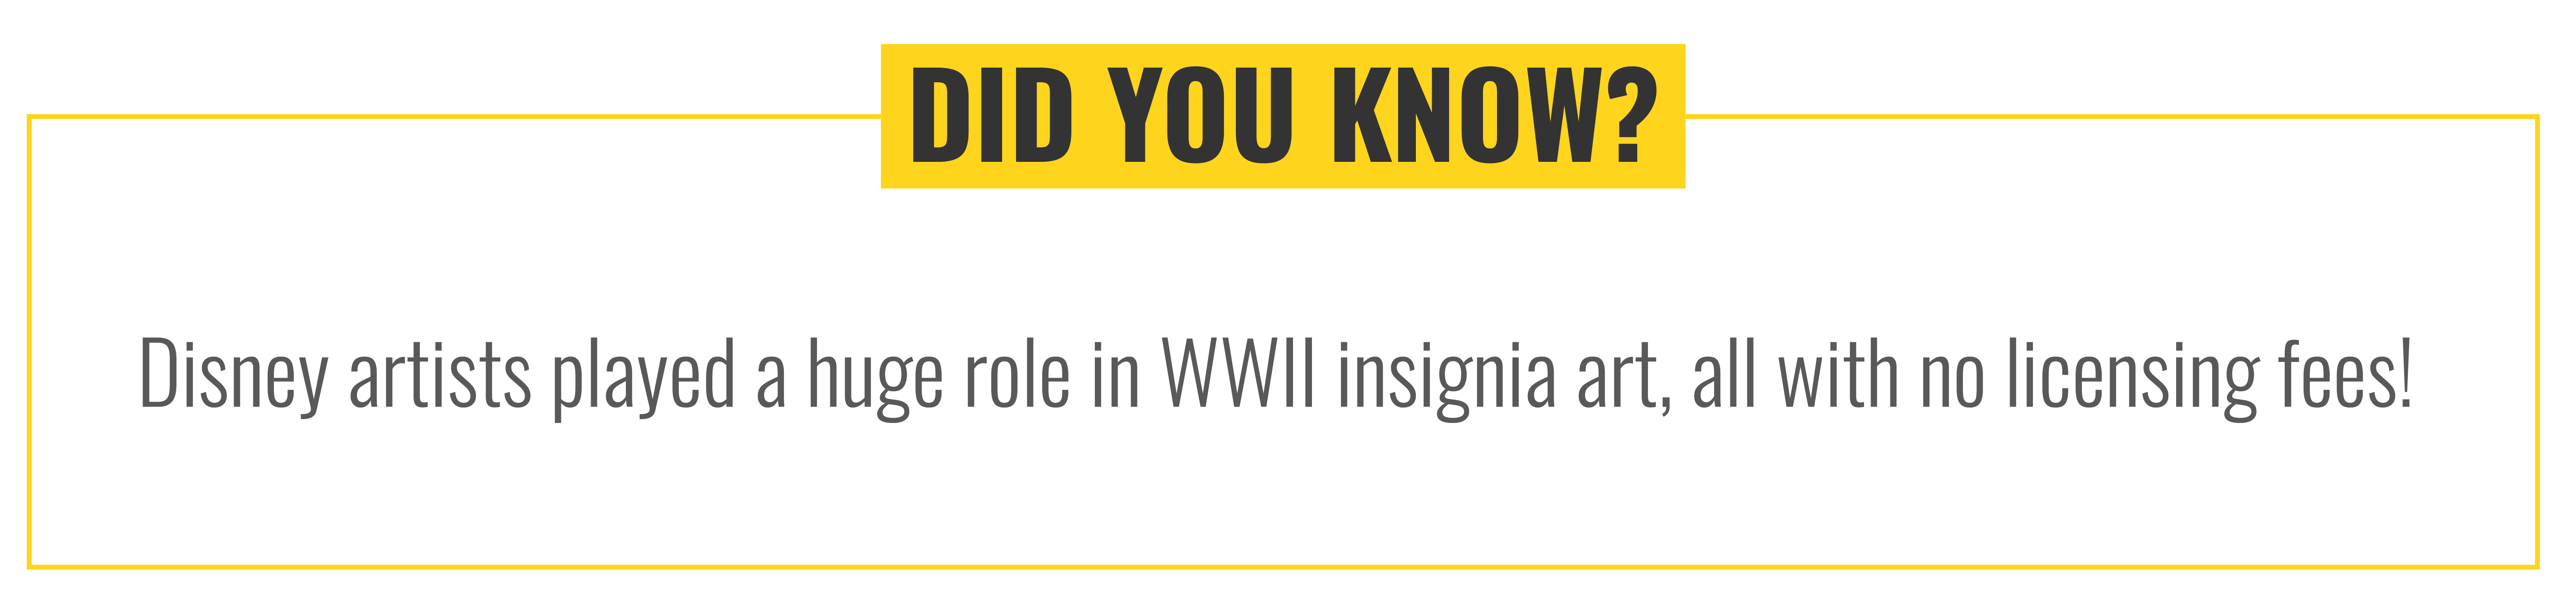 Fun Fact! Disney artists played a huge role in WWII insignia art, all with no licensing fees!